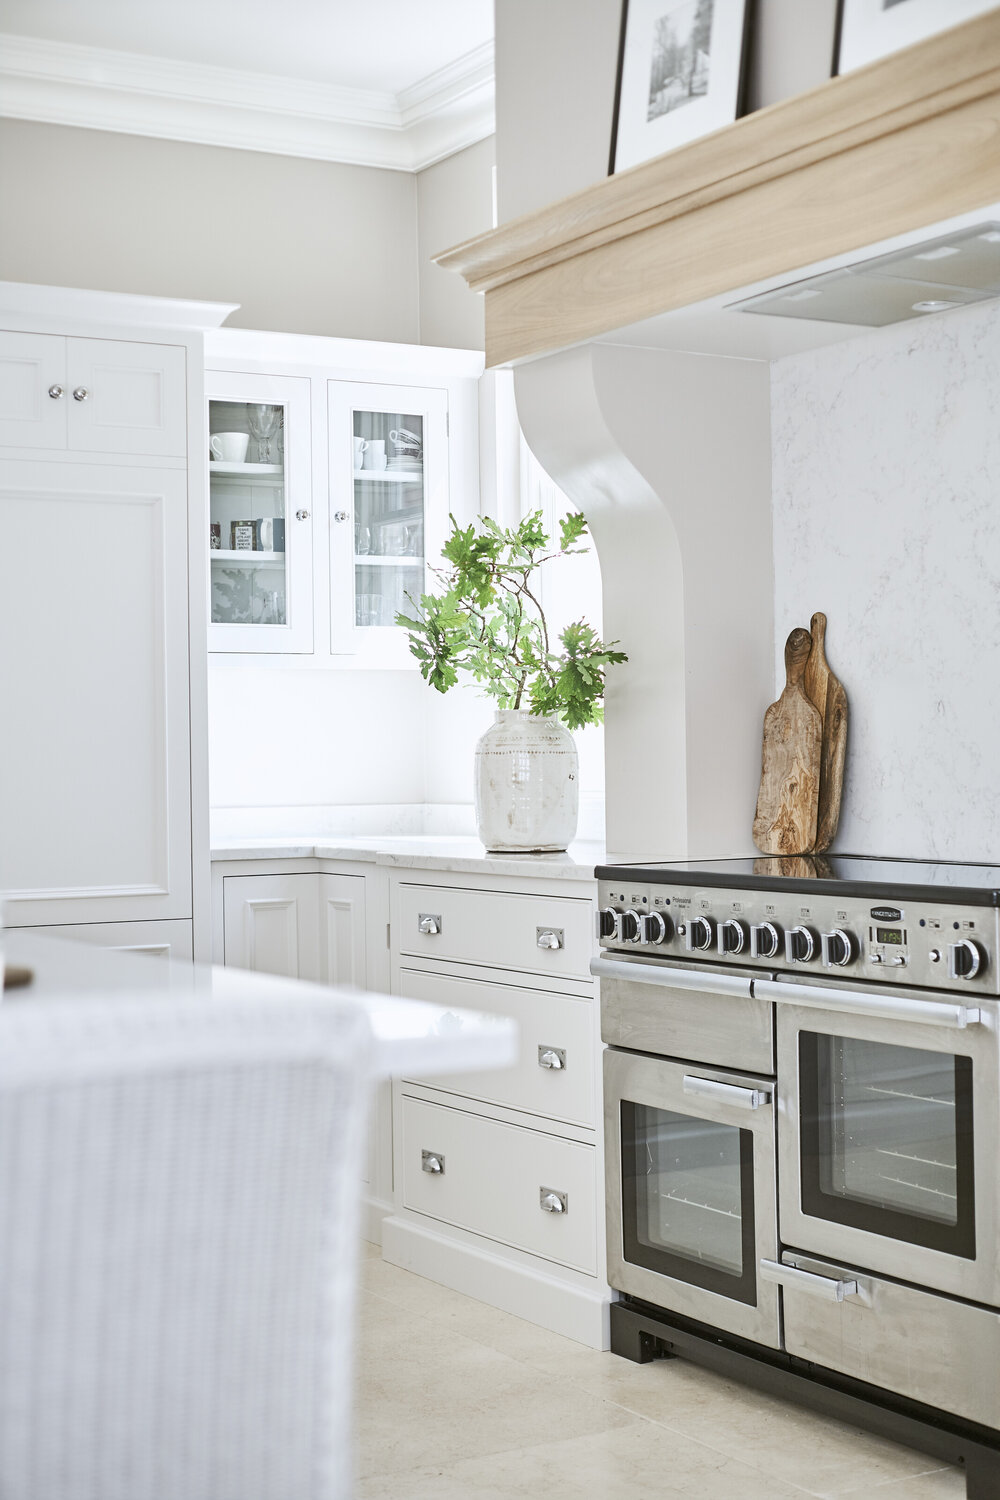 9 timeless duel fuel range cookers to enhance your kitchen   Fifi ...